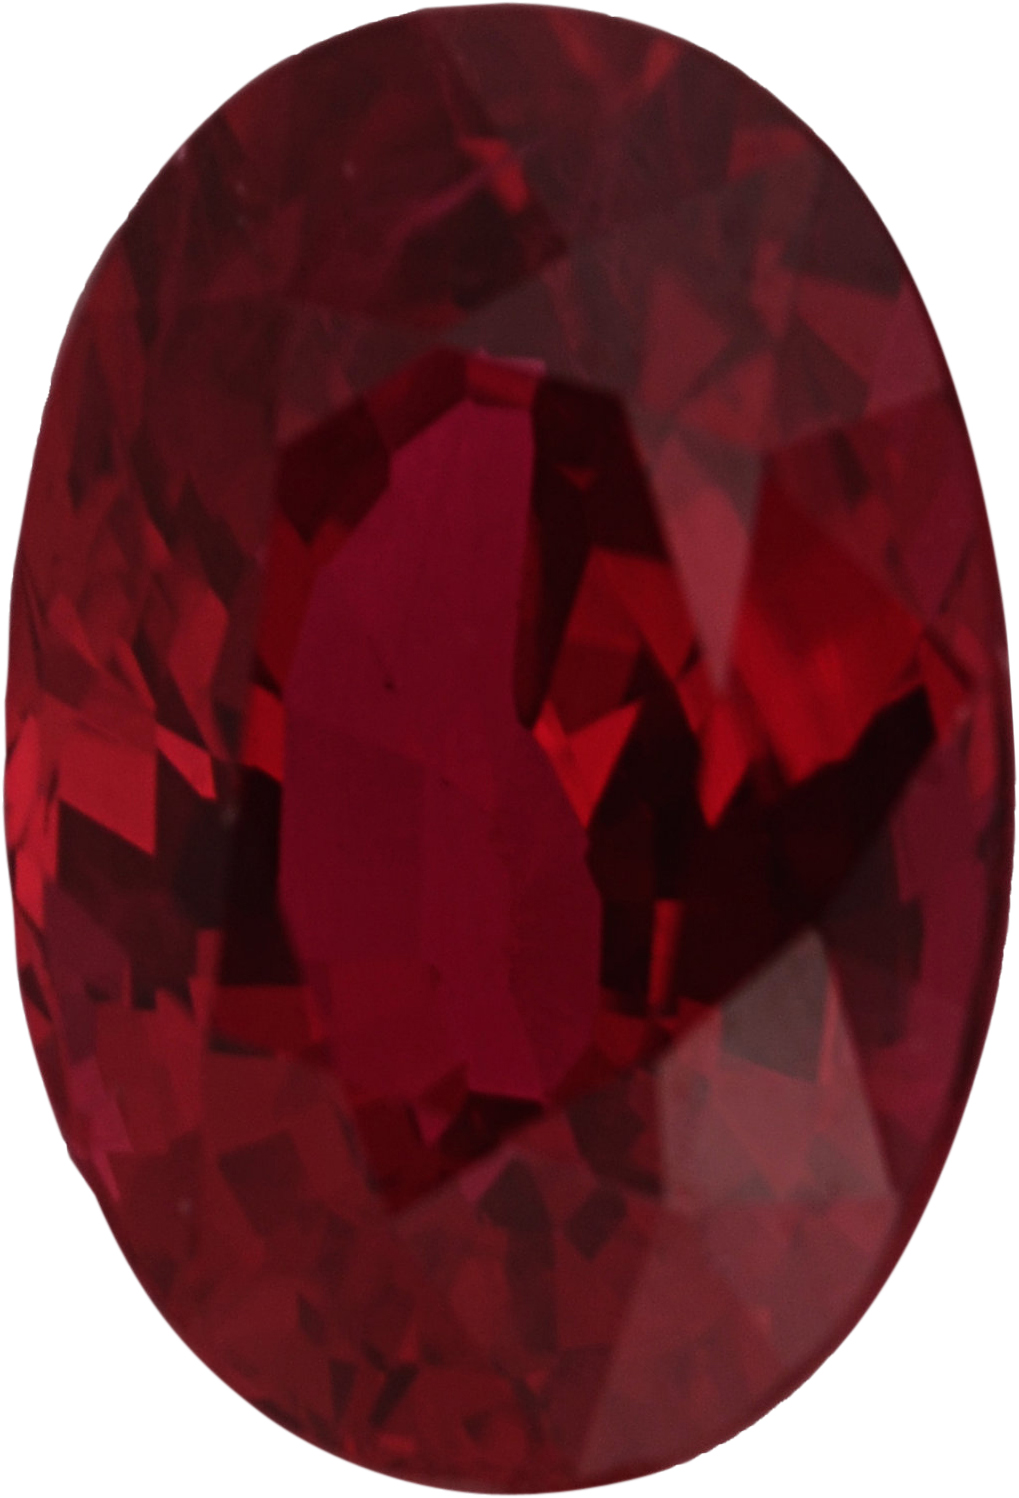 Loose Ruby Loose Gem in Oval Cut, Vibrant Purple Red, 7.07 x 4.83  mm, 1.1 Carats